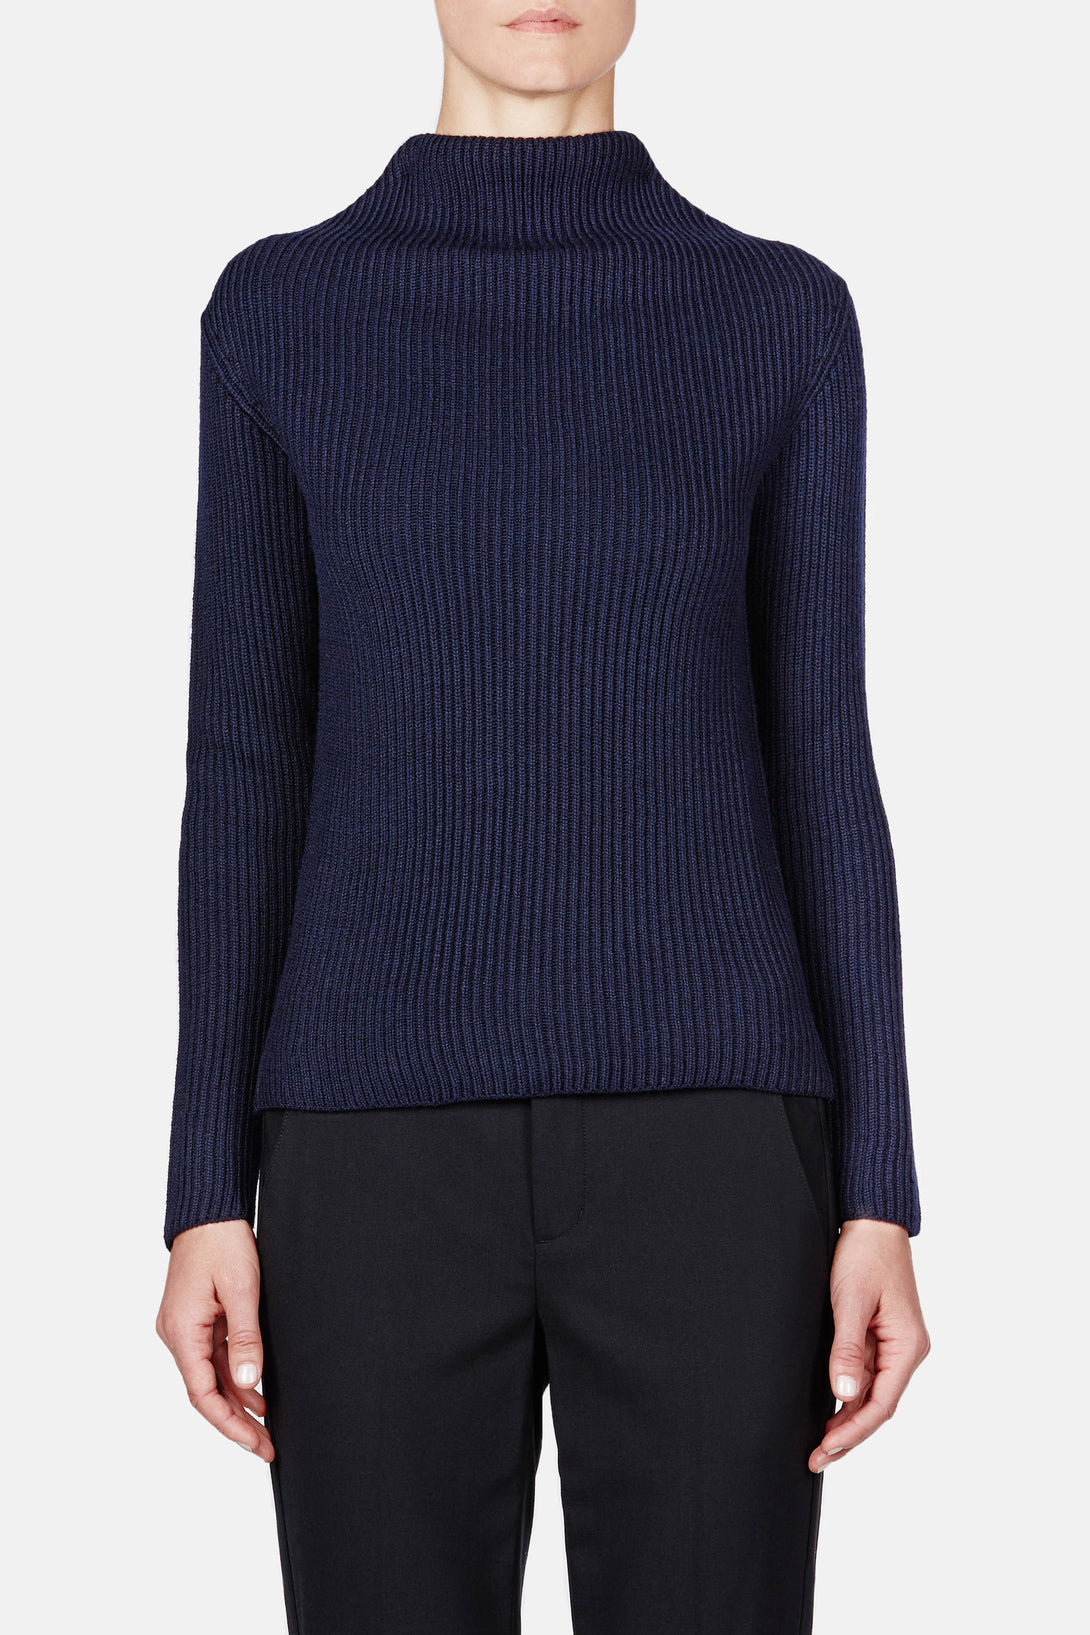 Folded Neck Sweater - Navy